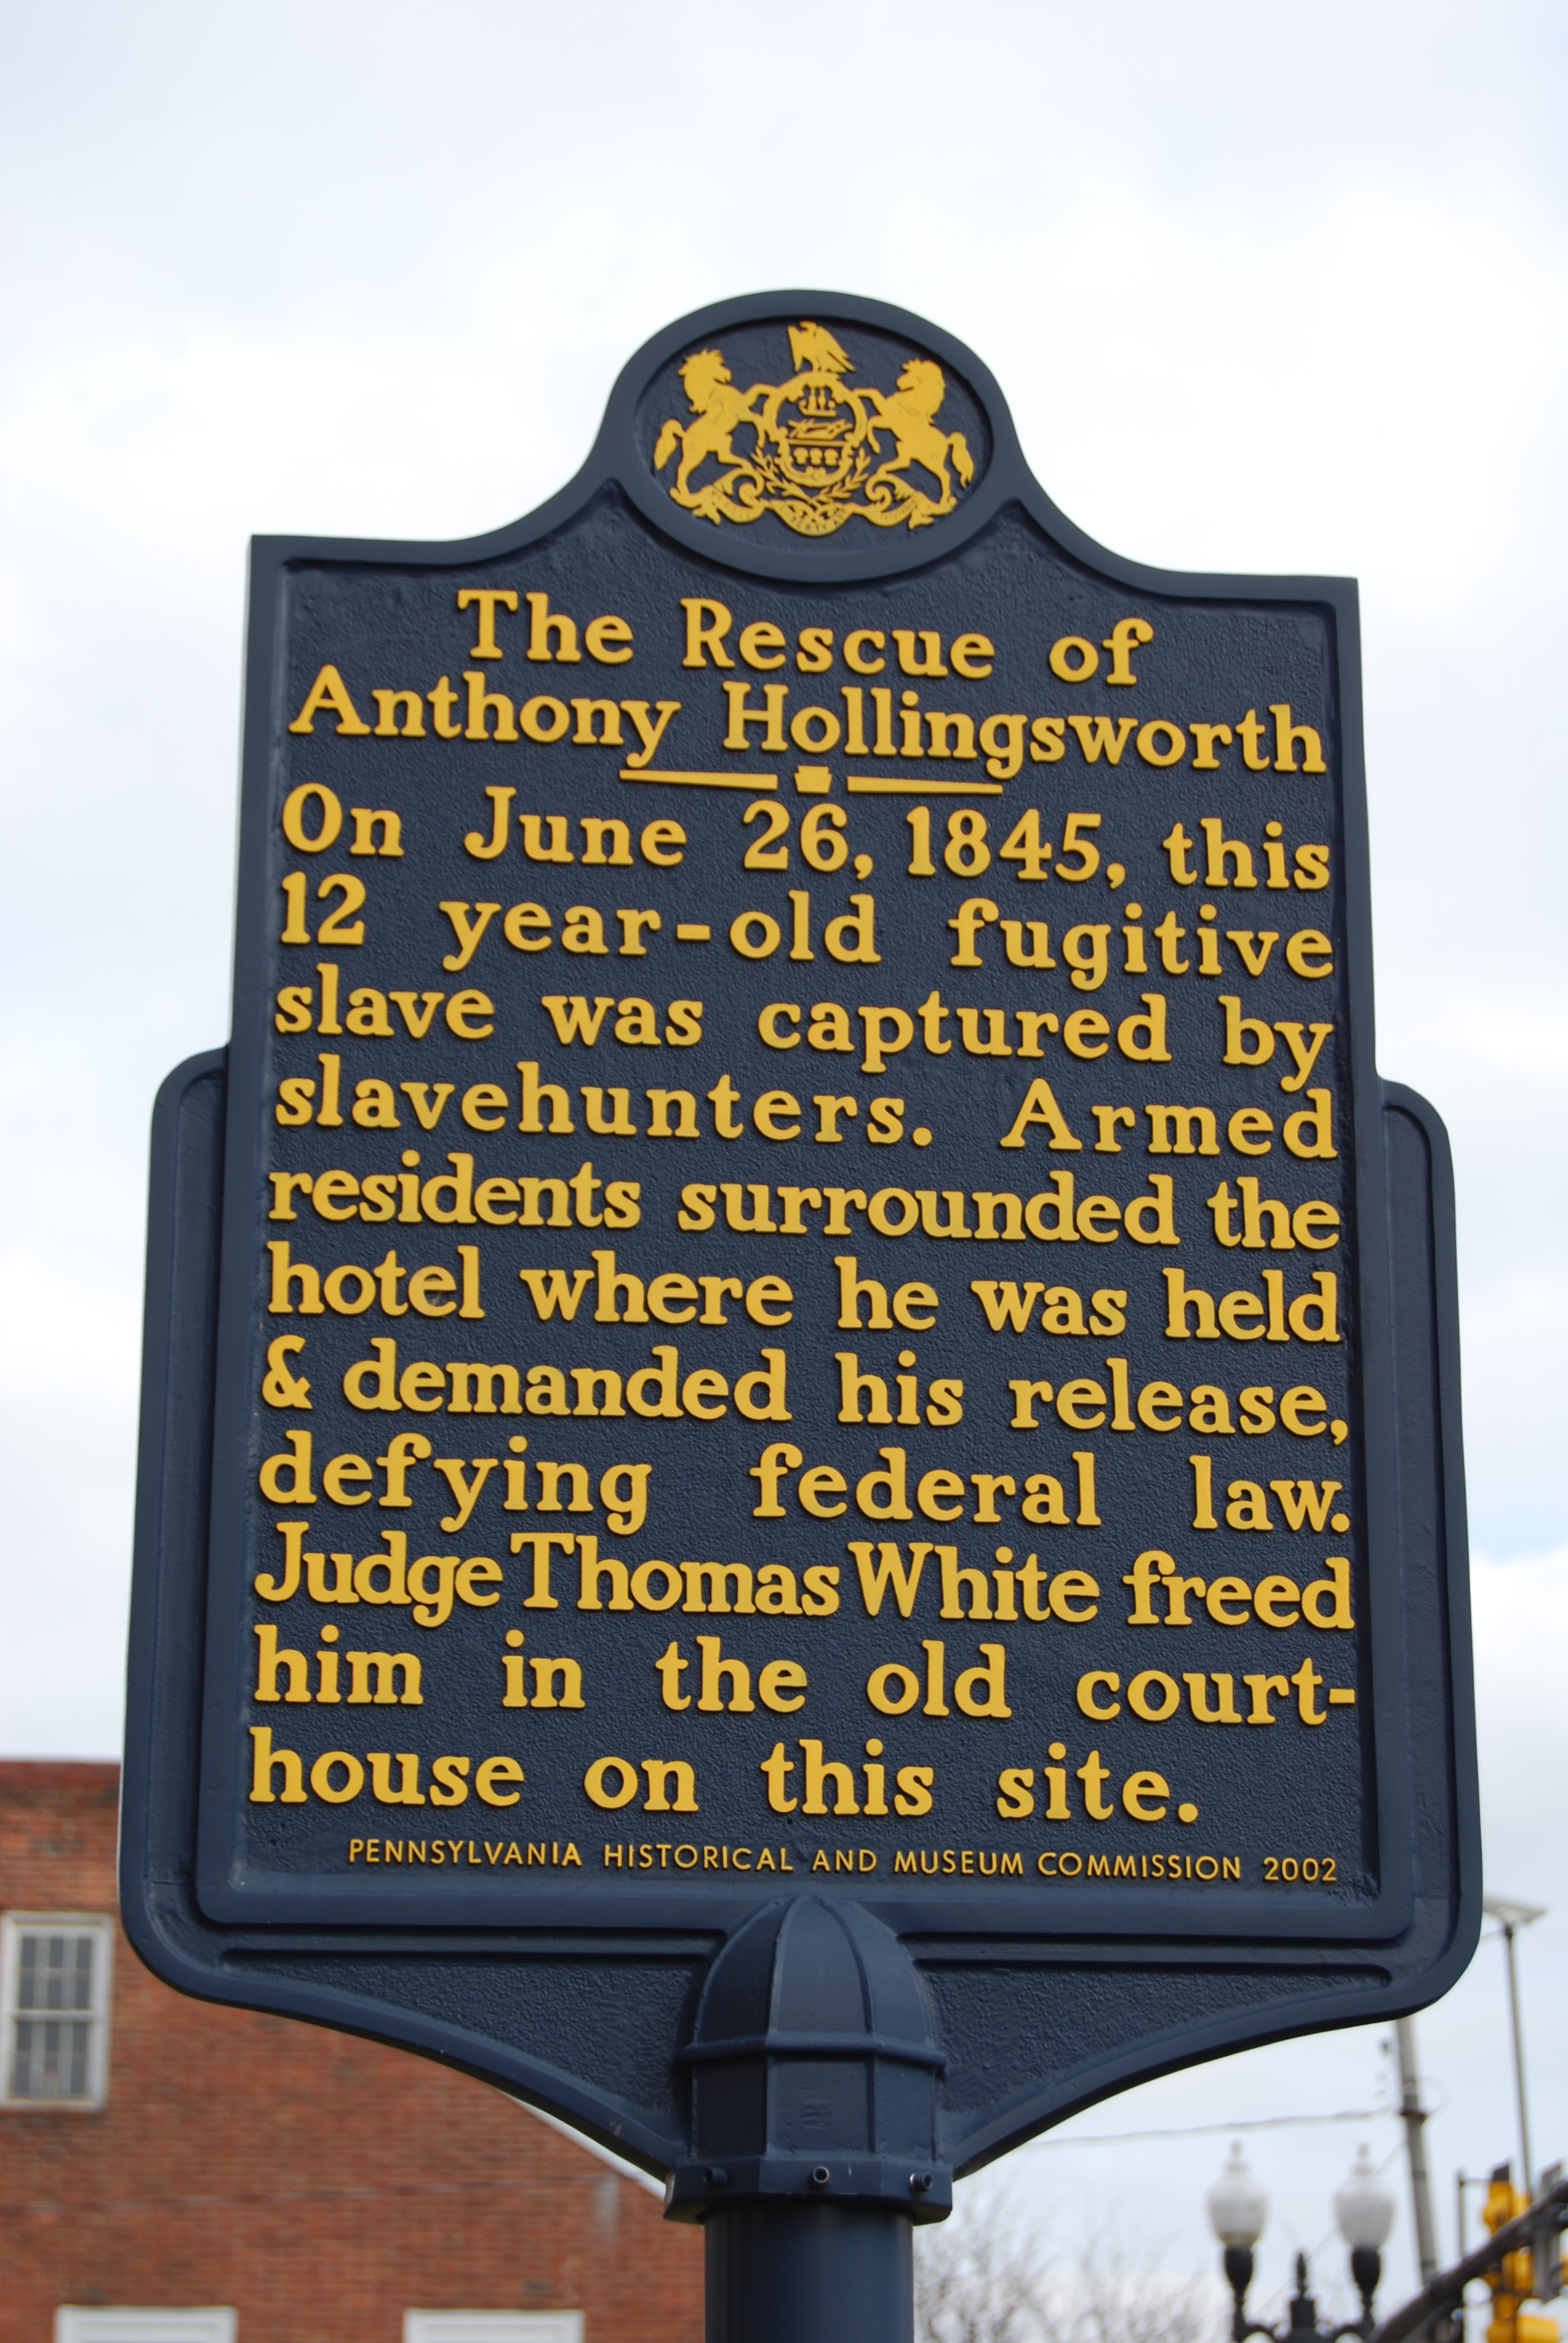 The Rescue of Anthony Hollingsworth Marker